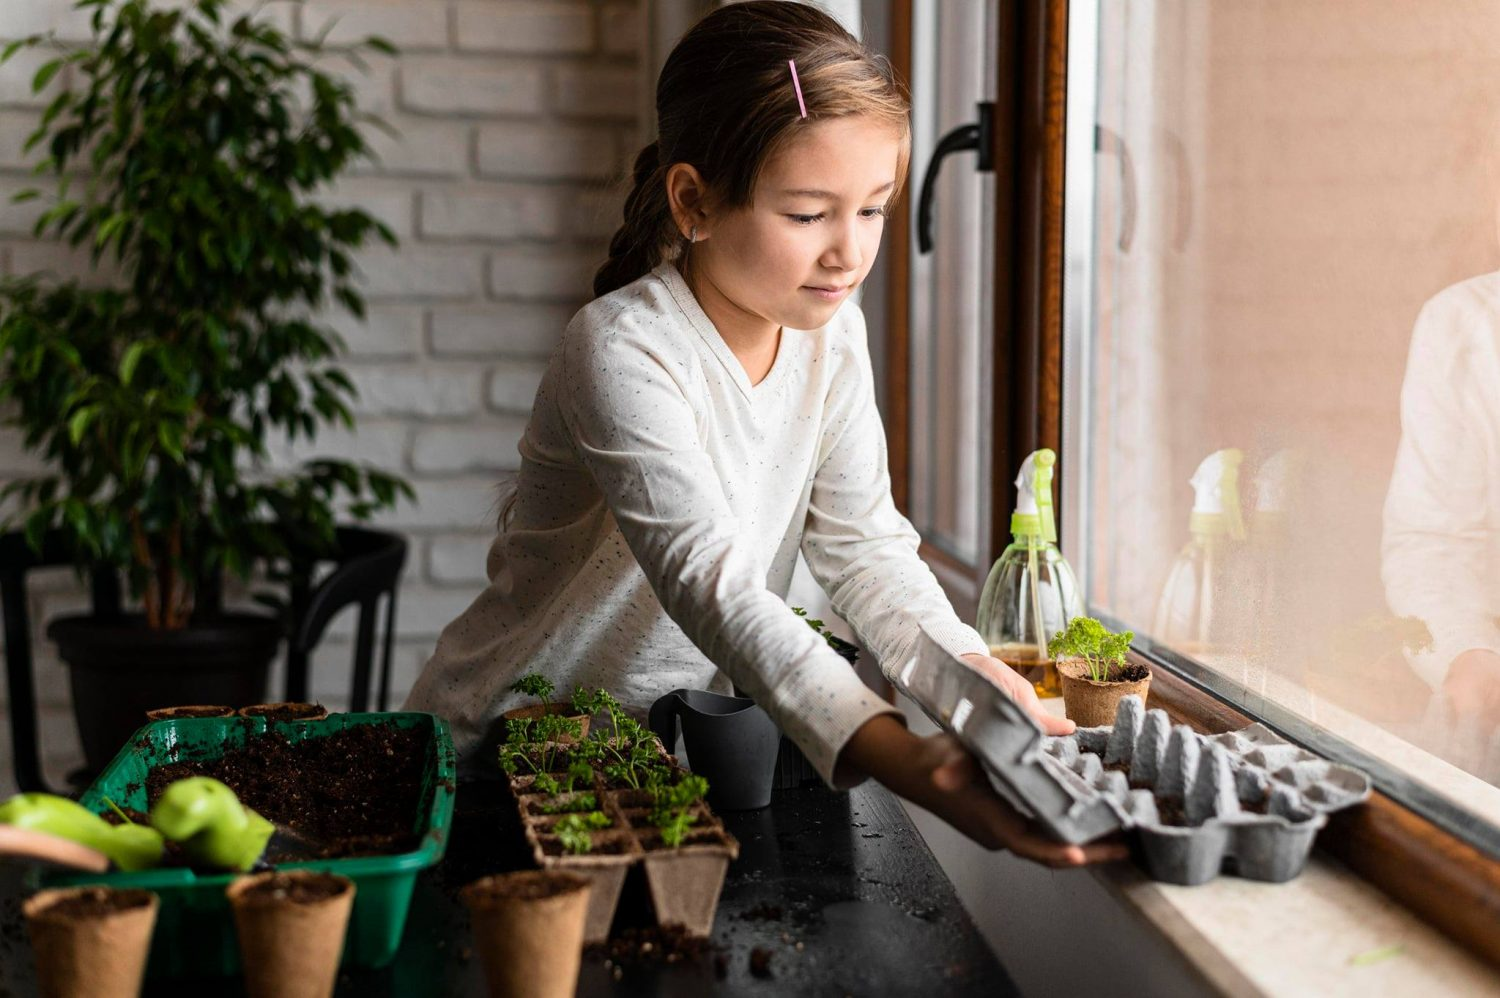 A young girl puts an egg carton of baby plants by the window